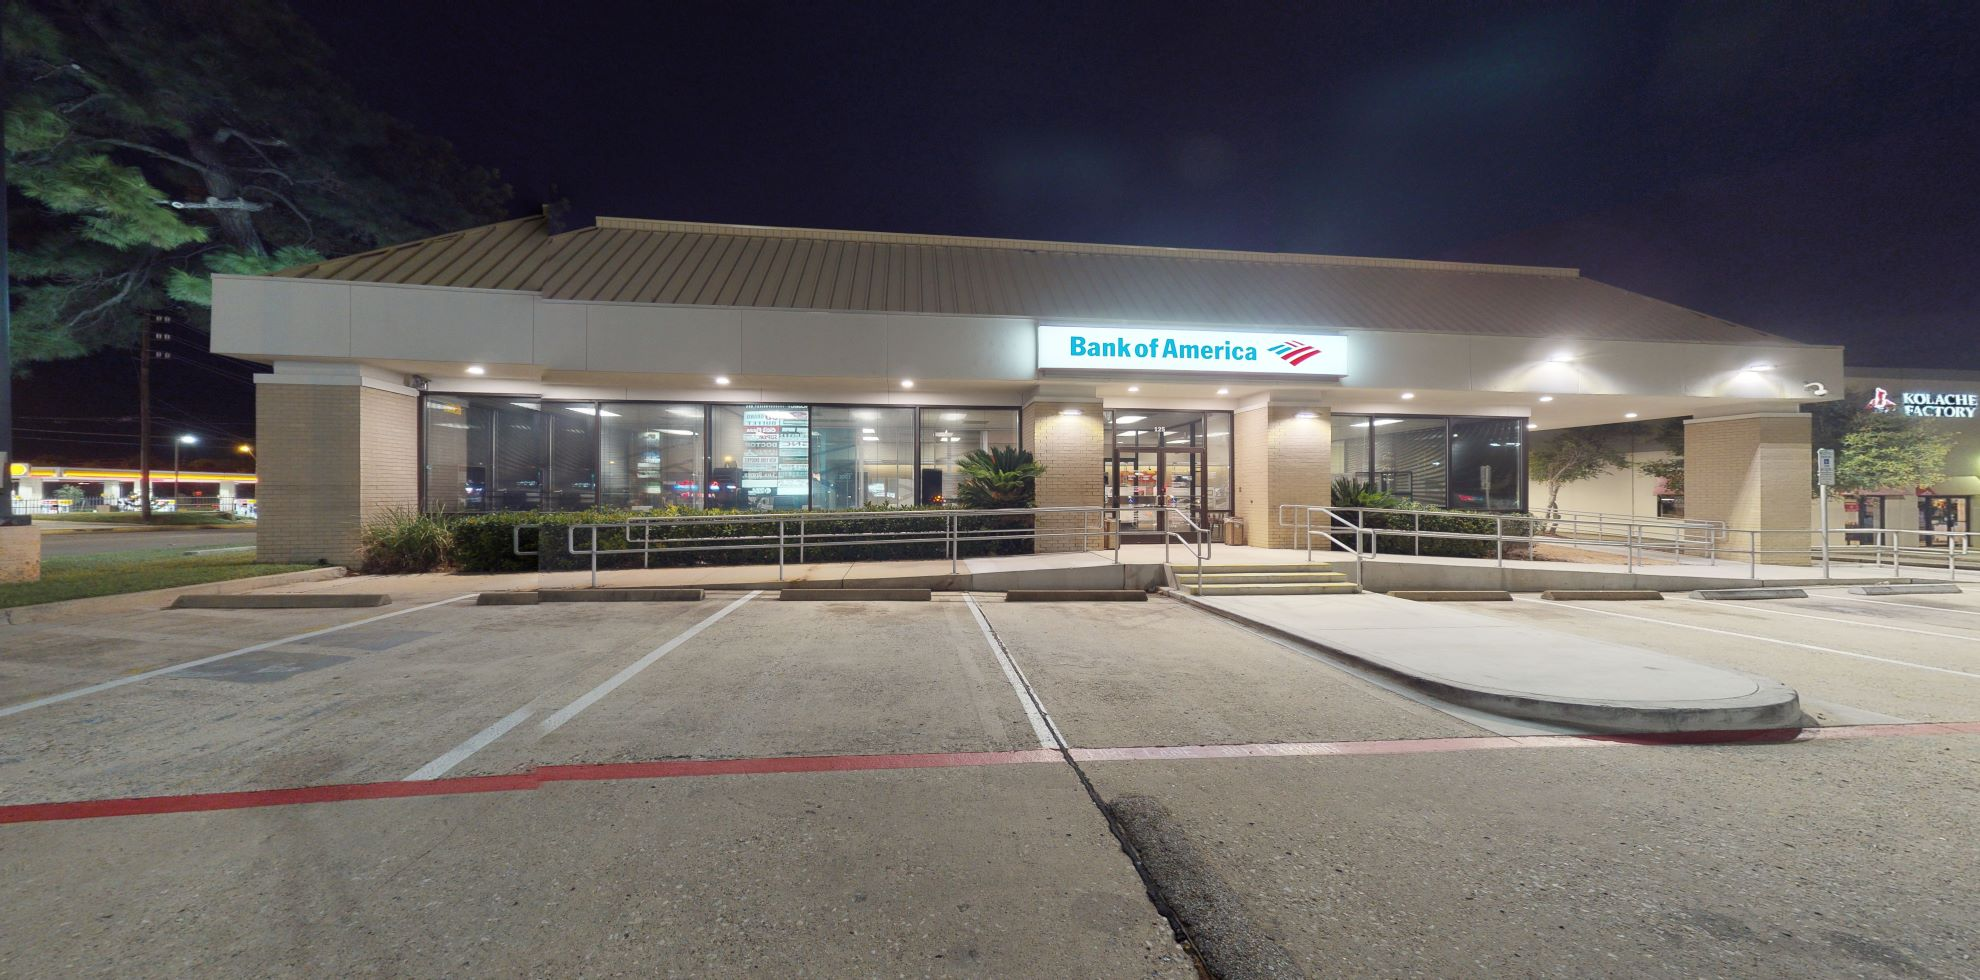 Bank of America financial center with drive-thru ATM   125 Sawdust Rd, Spring, TX 77380